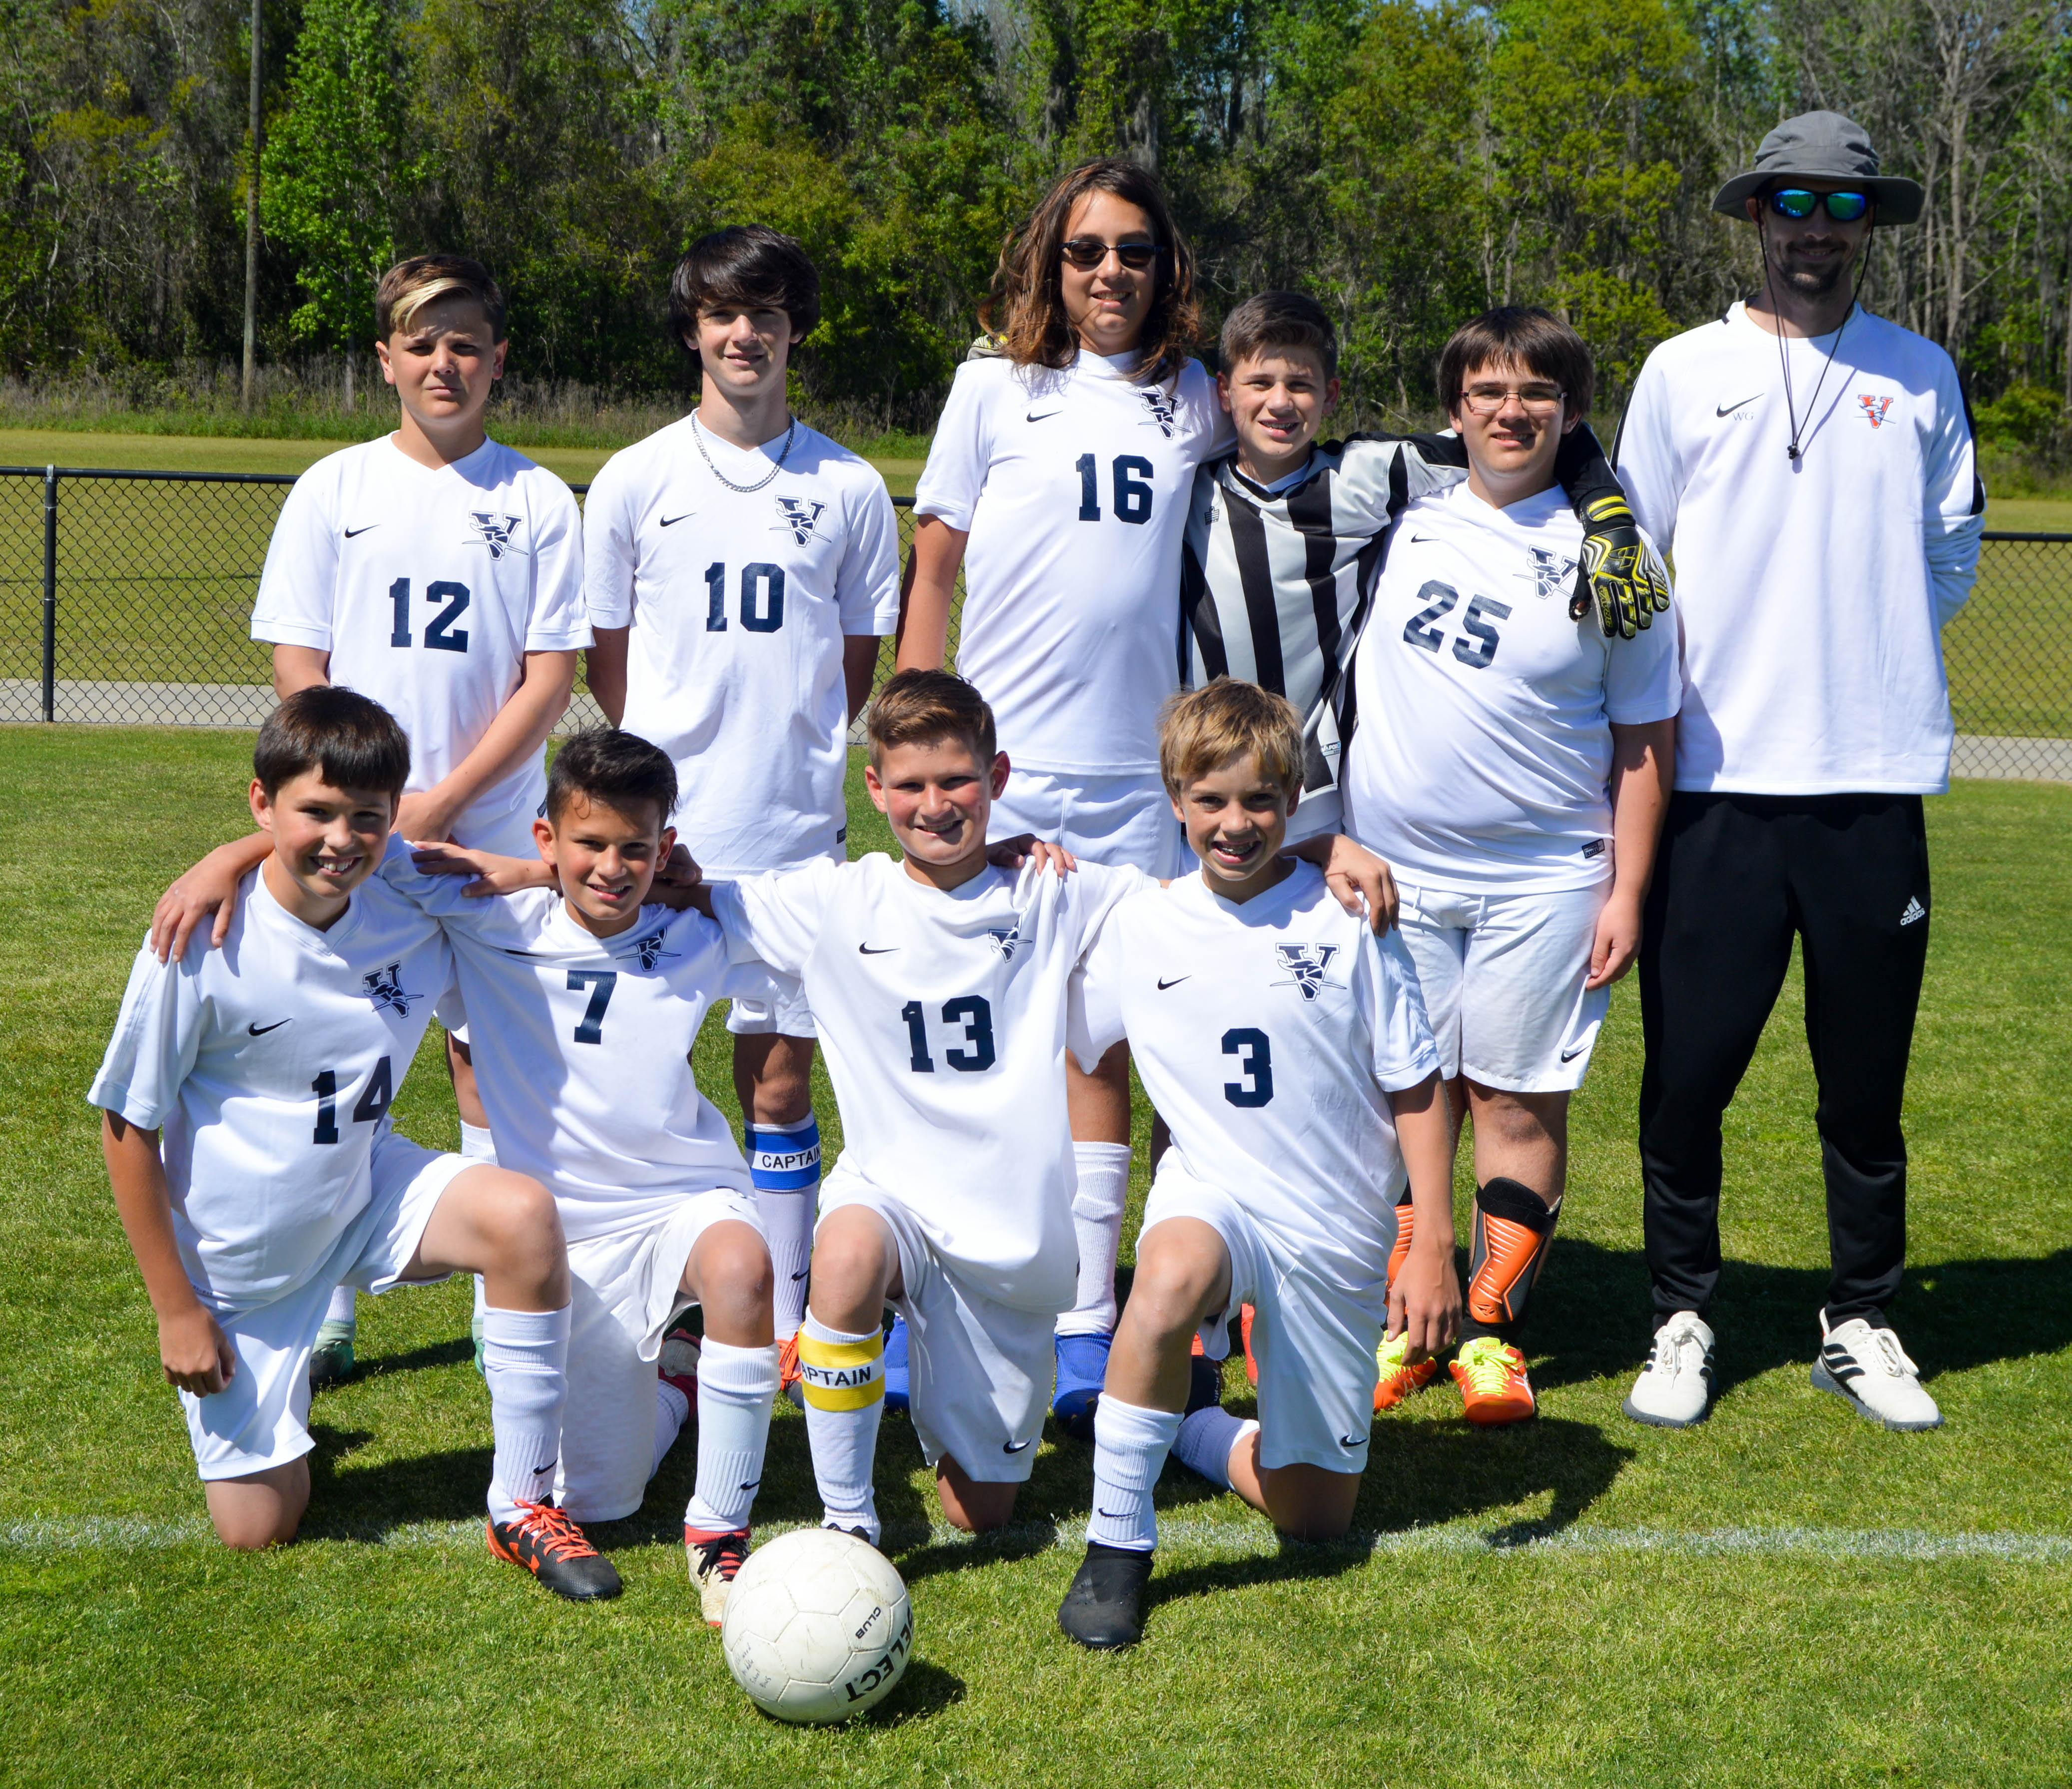 middle school boys soccer team